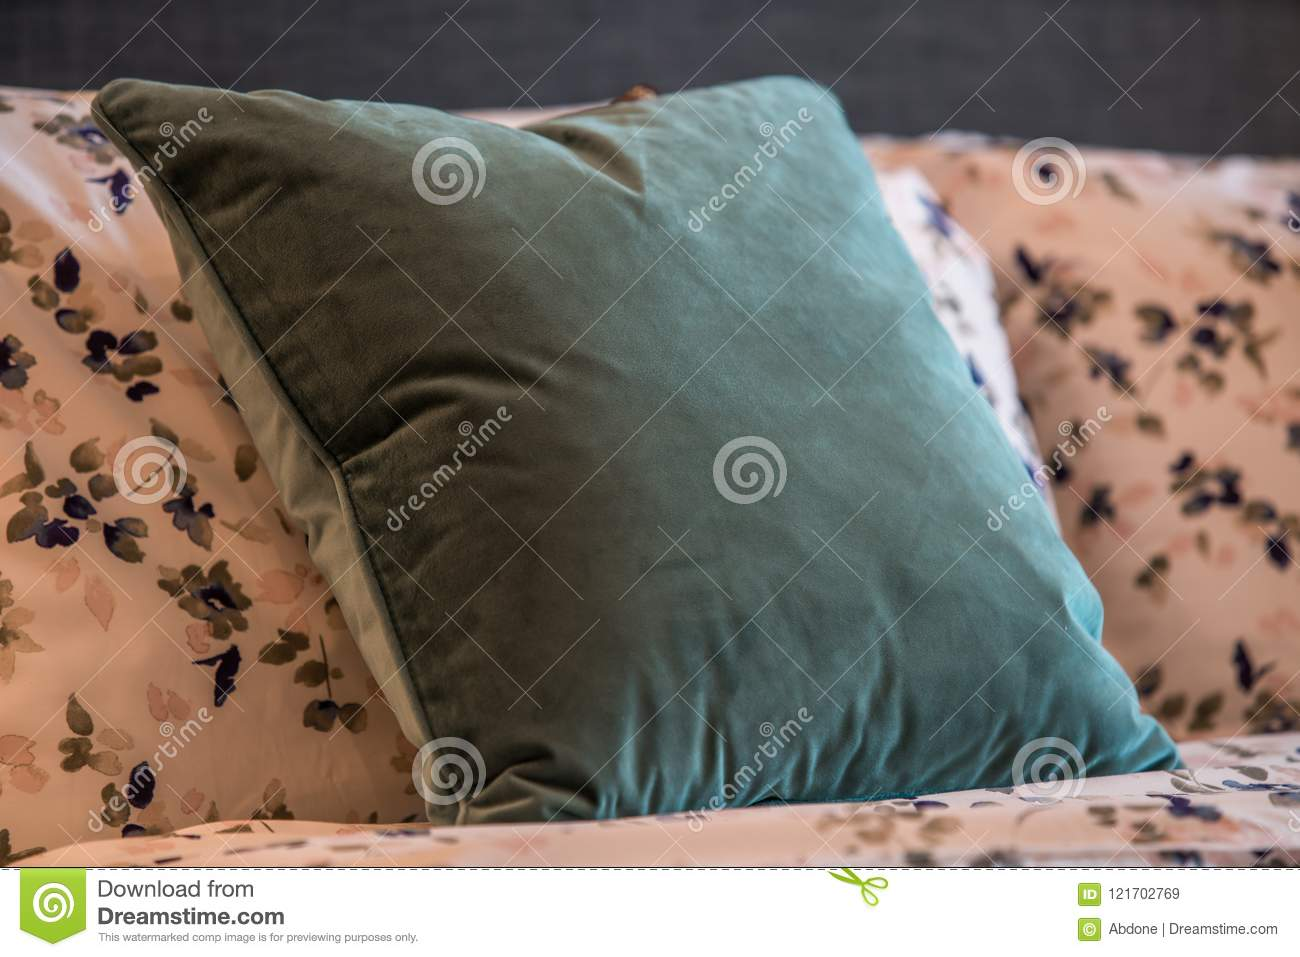 Cozy Decorative Pillows On A Bed Stock Image Image Of Armchair Pillows 121702769